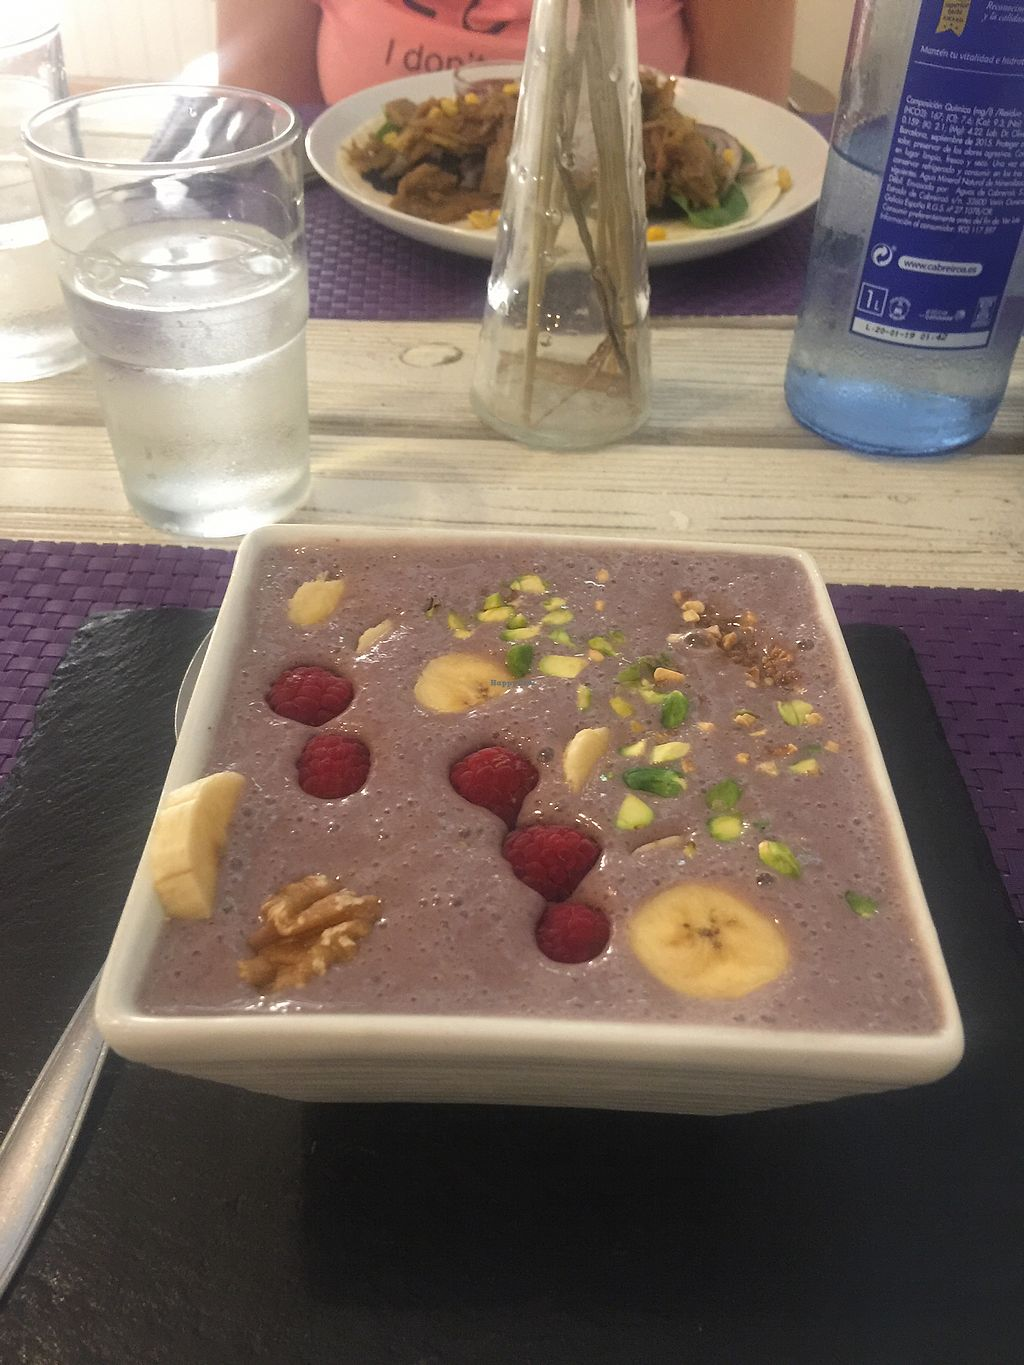 """Photo of Acai  by <a href=""""/members/profile/shervinv"""">shervinv</a> <br/>Acai Bowl <br/> August 9, 2017  - <a href='/contact/abuse/image/73437/290800'>Report</a>"""